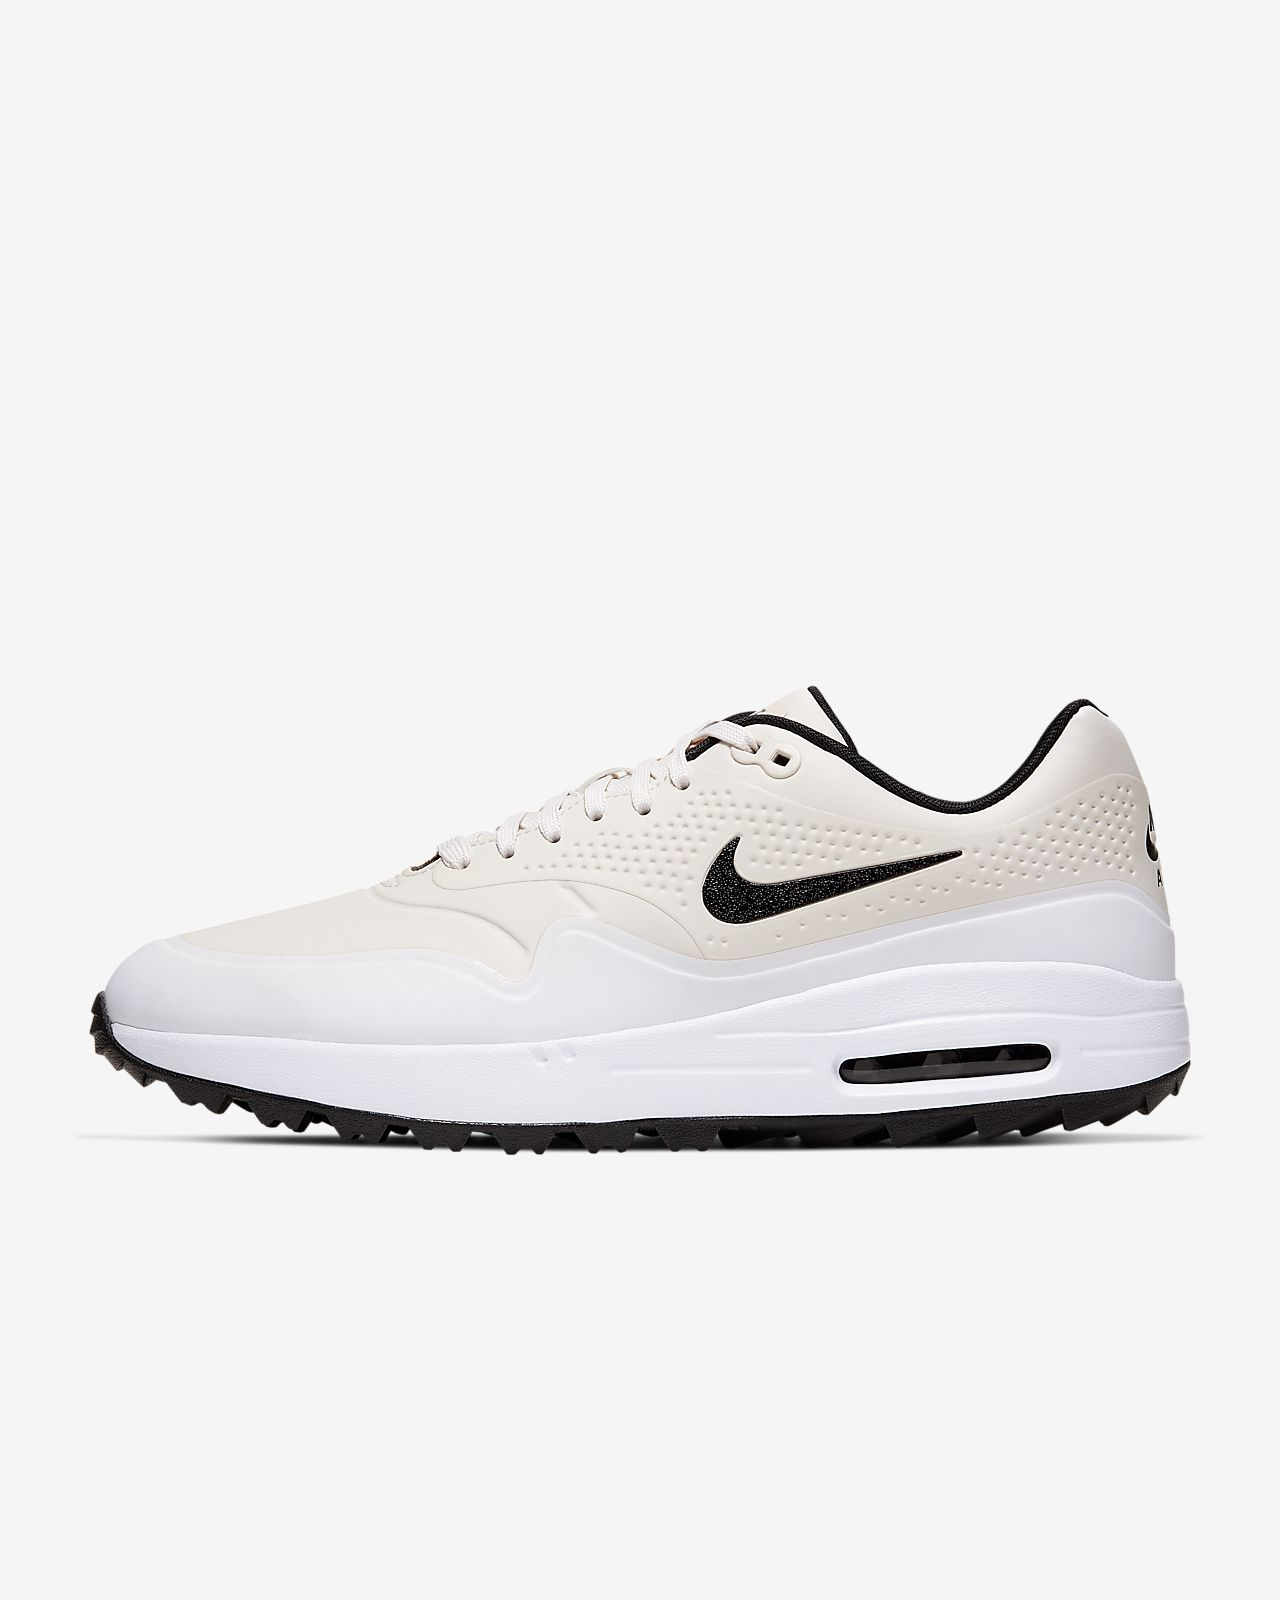 new style the sale of shoes coupon codes Chaussure de golf Nike Air Max 1 G pour Homme. Nike FR